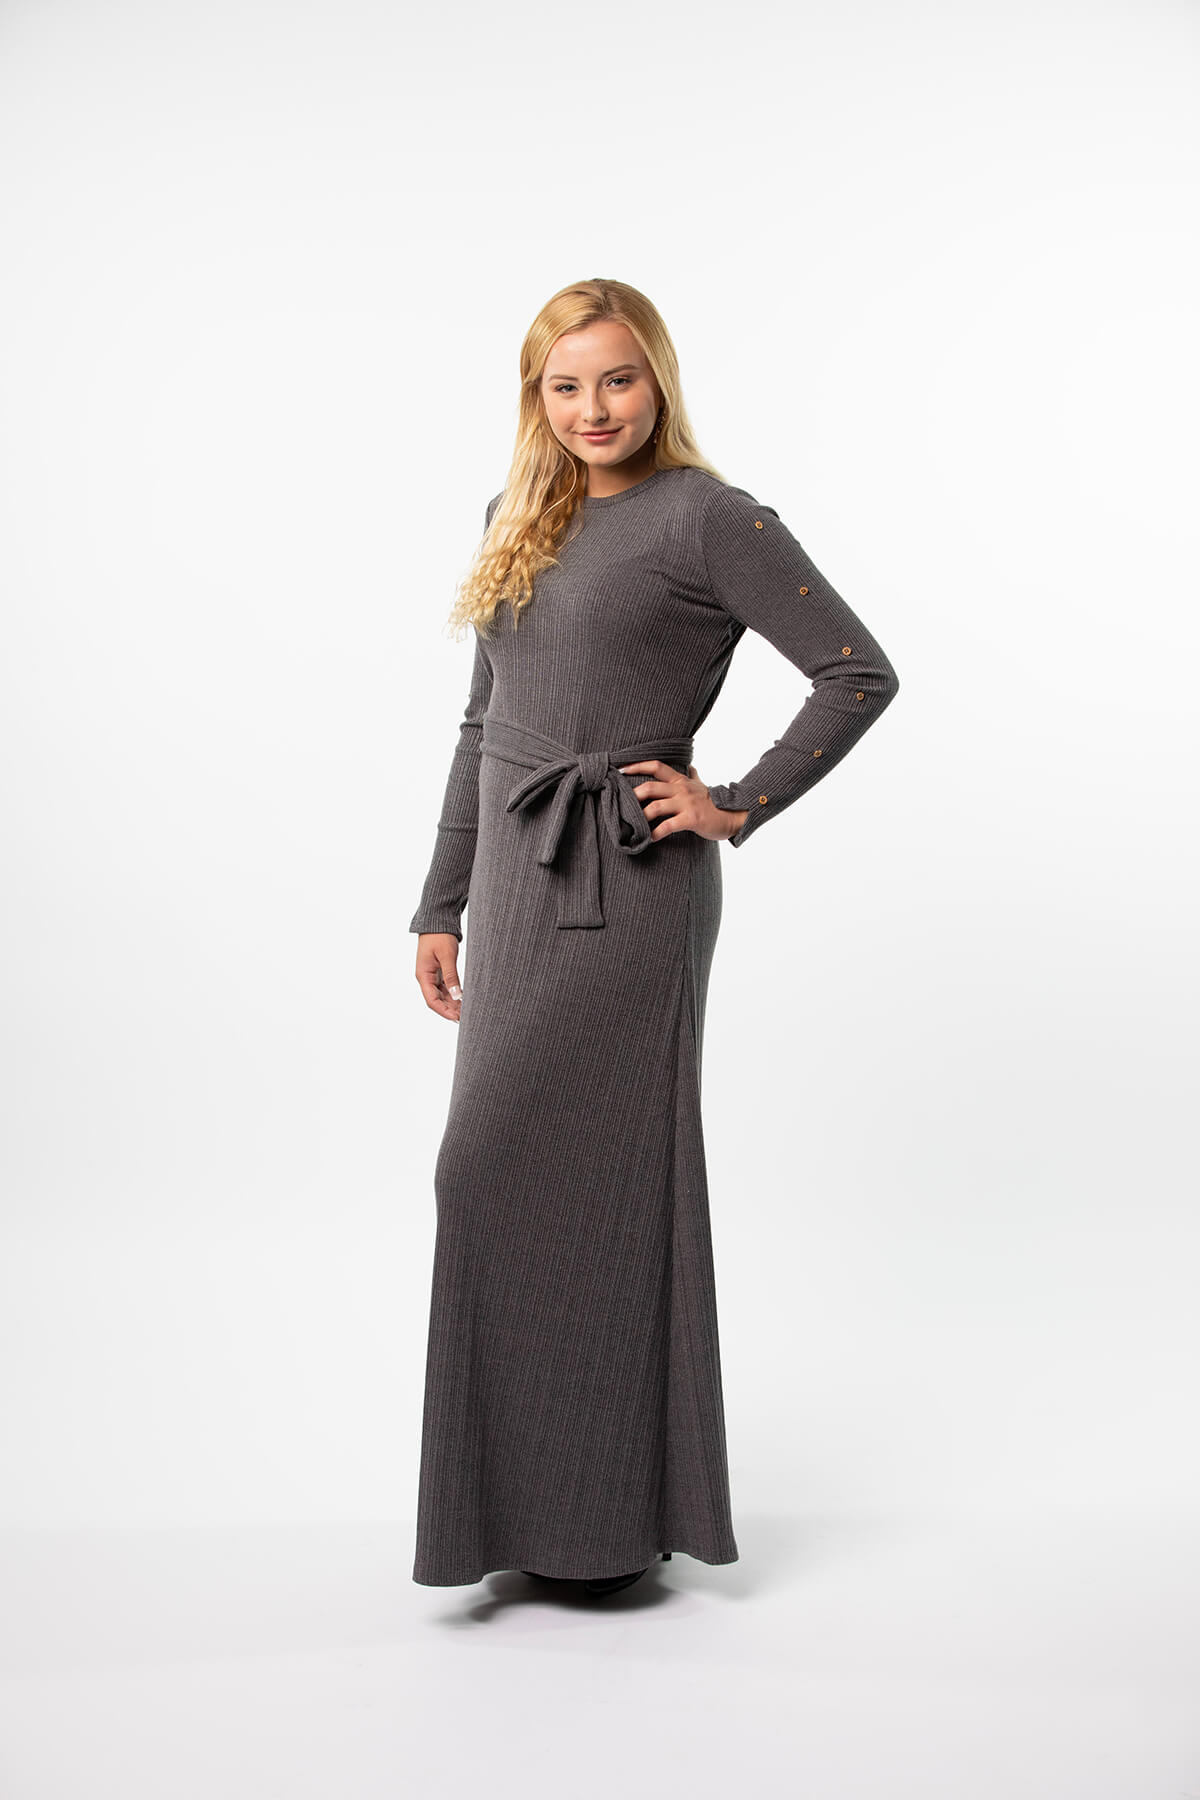 Ribbed Maxi Dress in Charcoal or Black with Gold Buttons